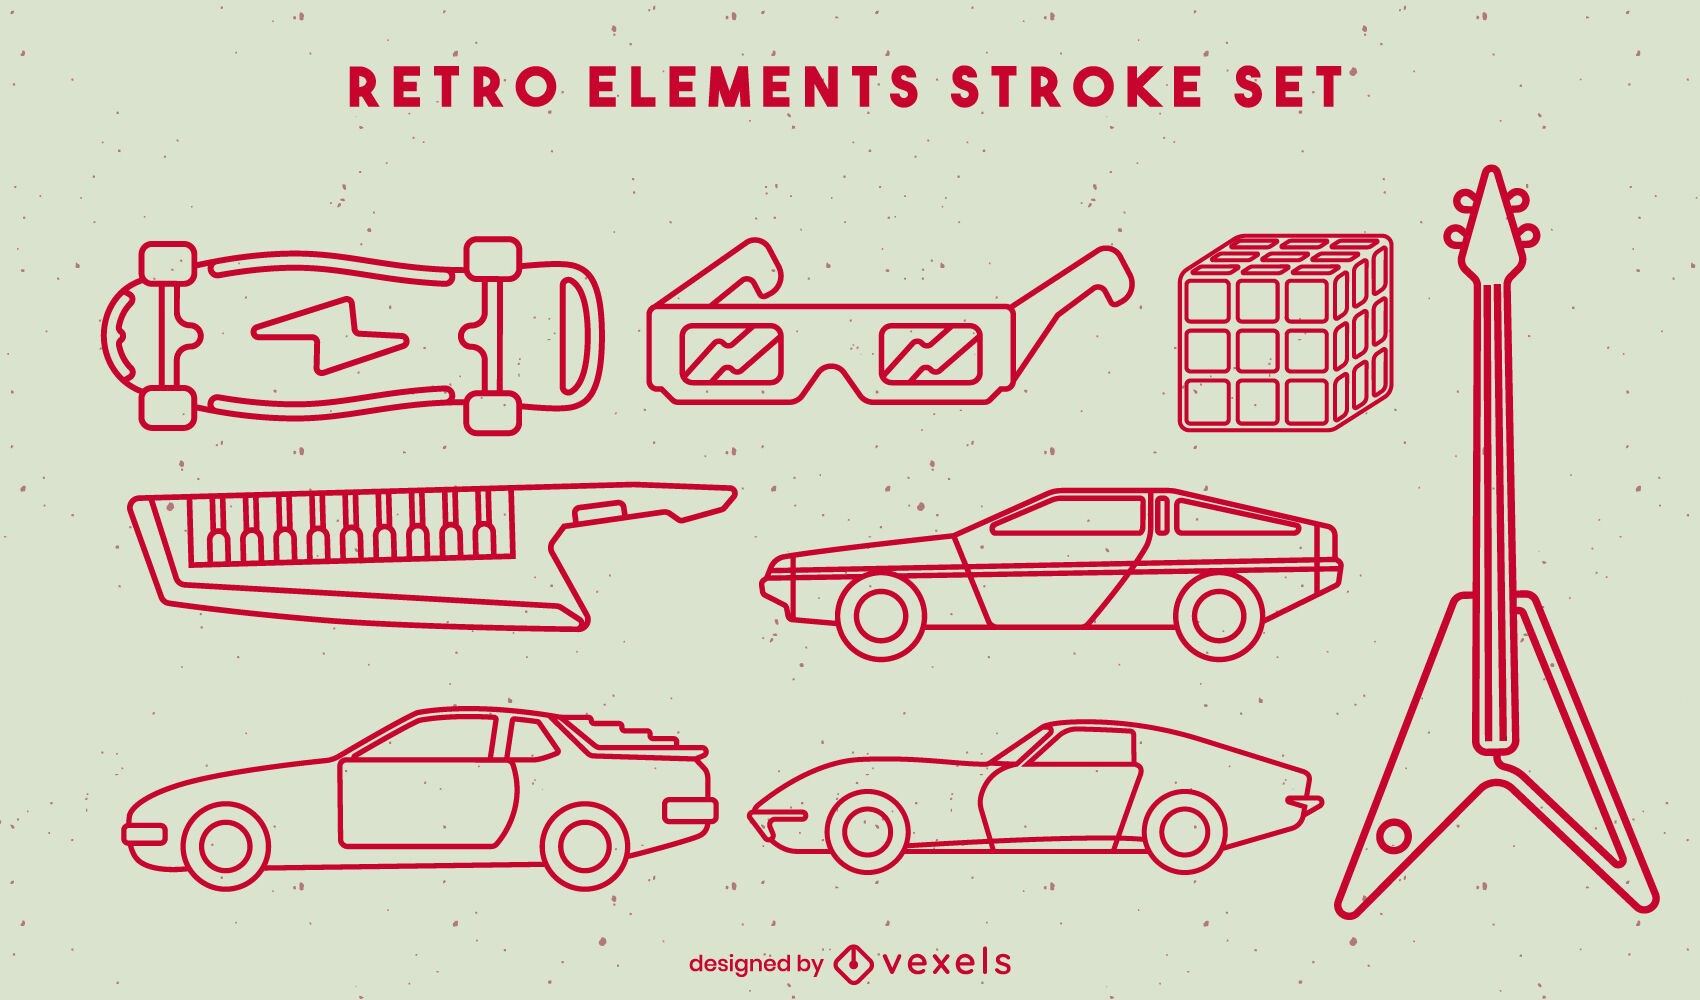 Retro cars and elements stroke set